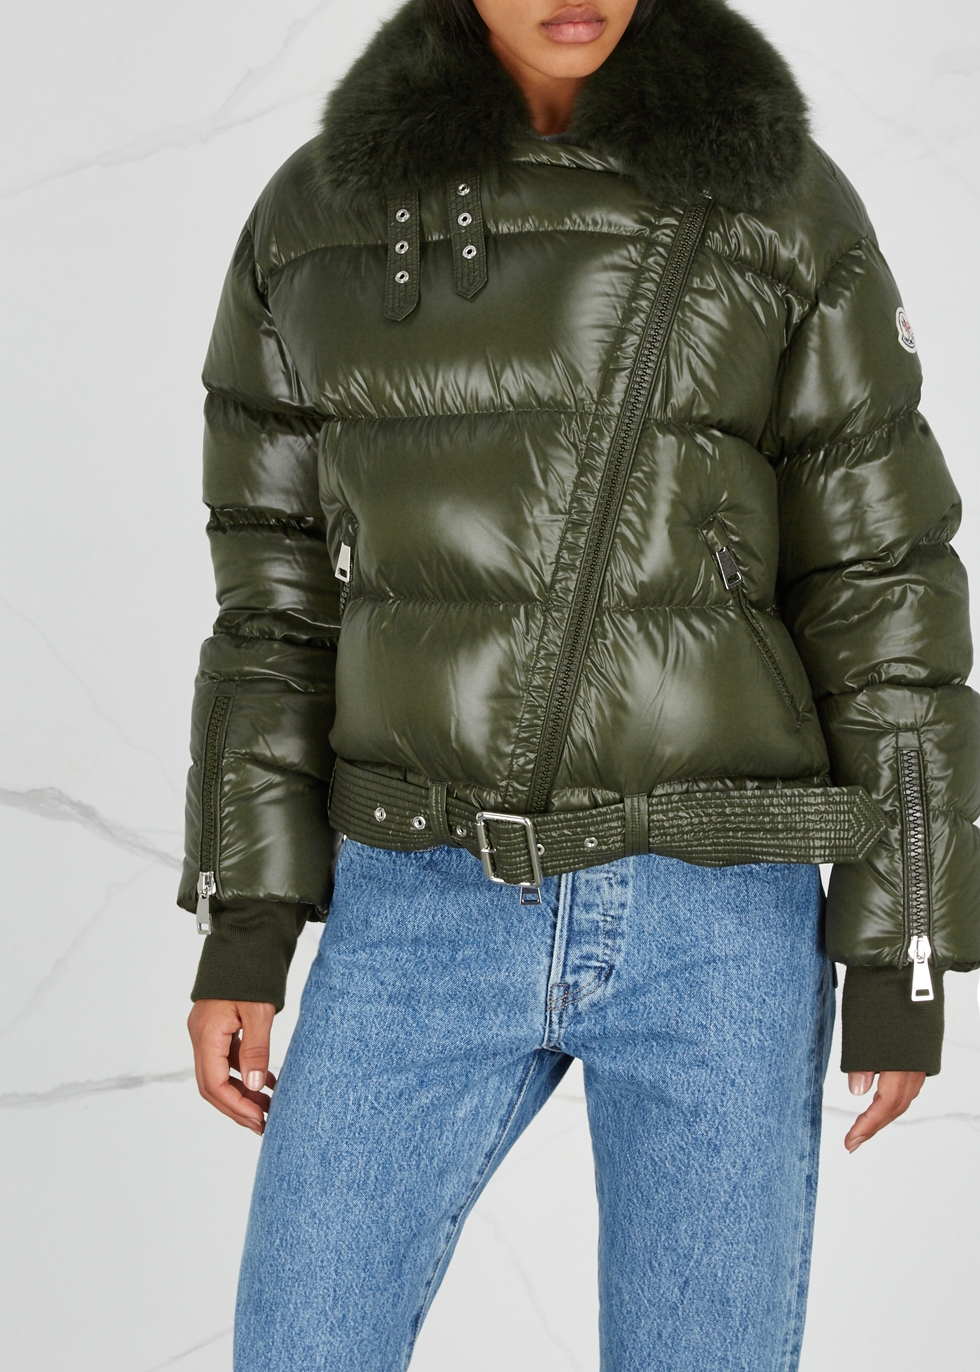 784328158 sale moncler coat green up landscaping 099d9 a3520